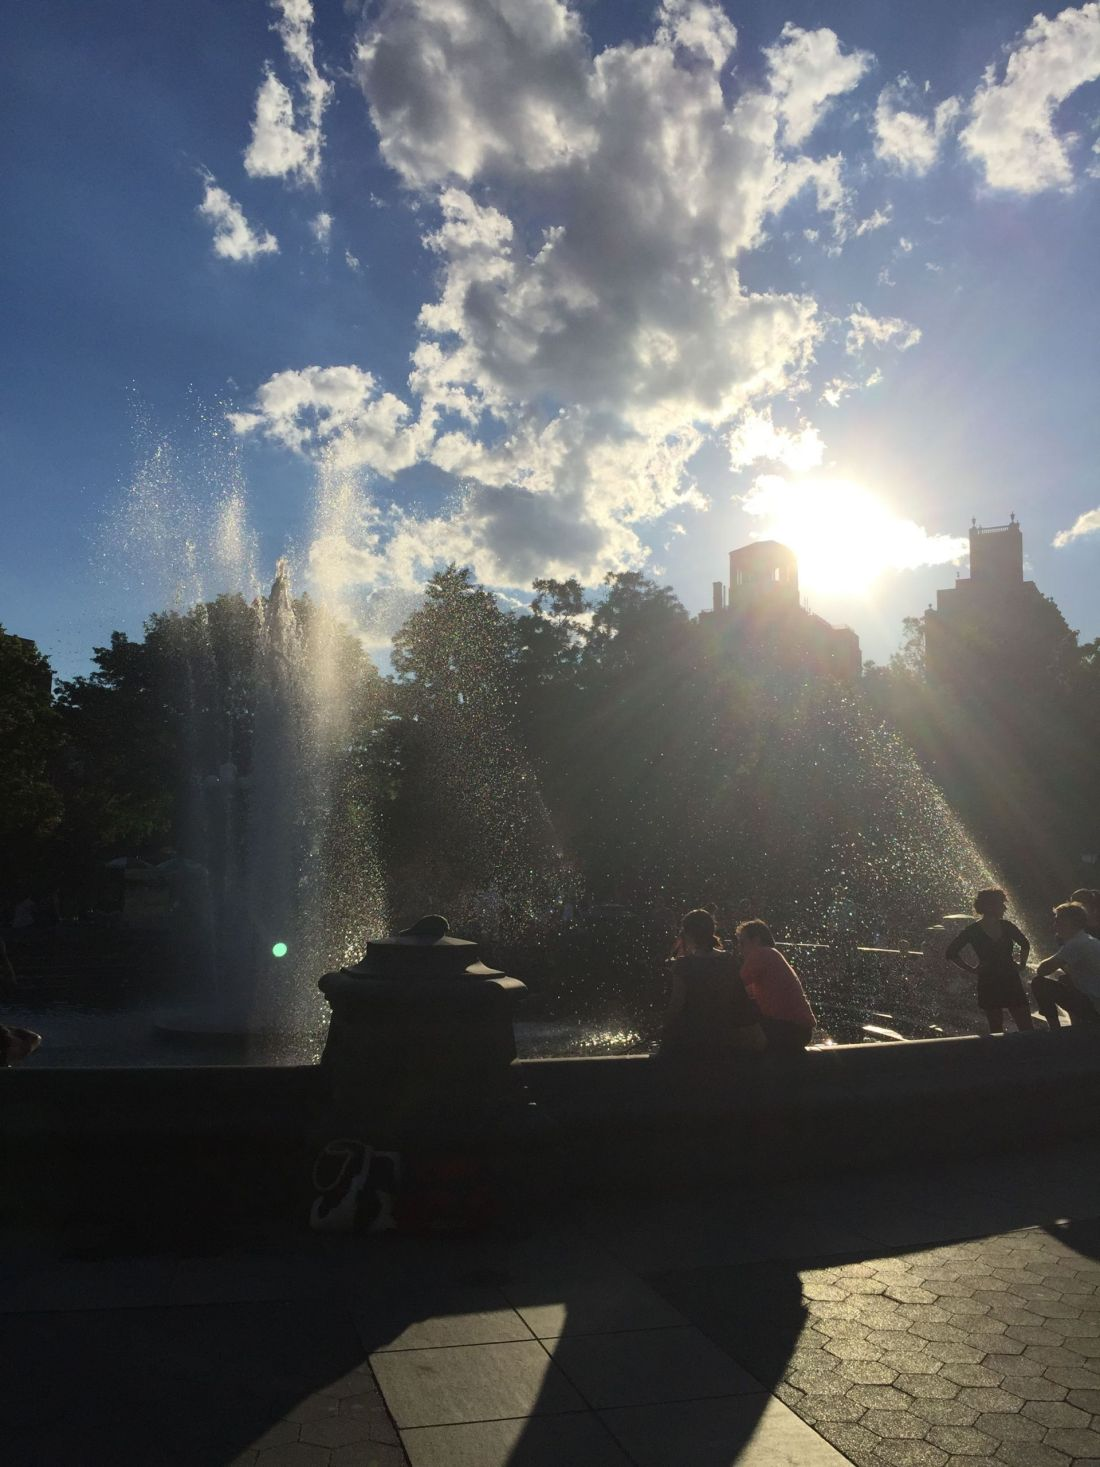 The fountain in Washington Square Park, New York